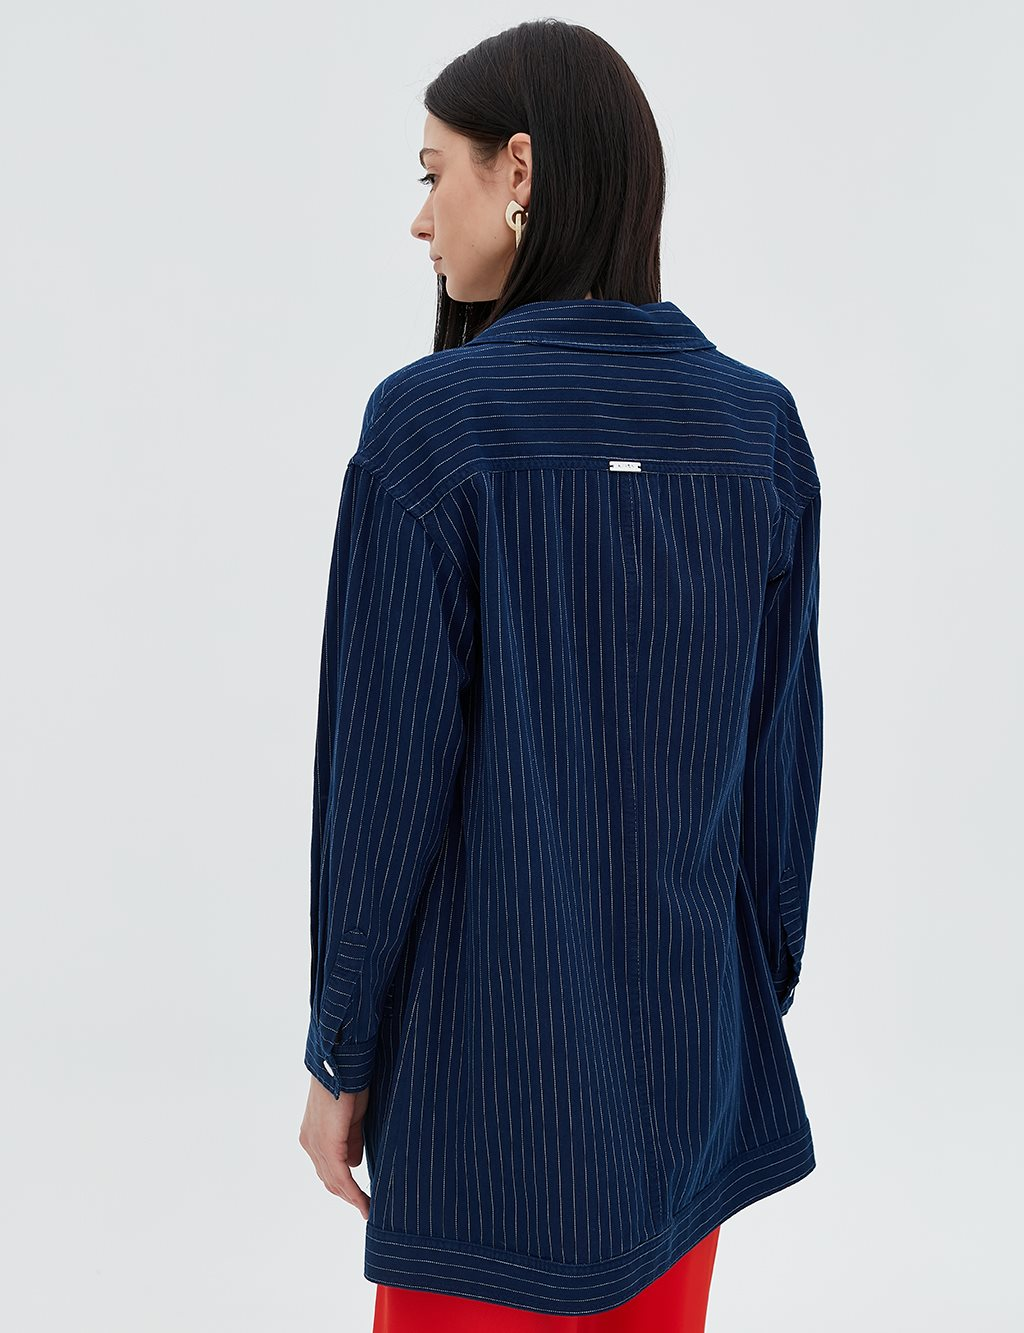 Striped Jacket With Double Pocket B20 13008A Navy